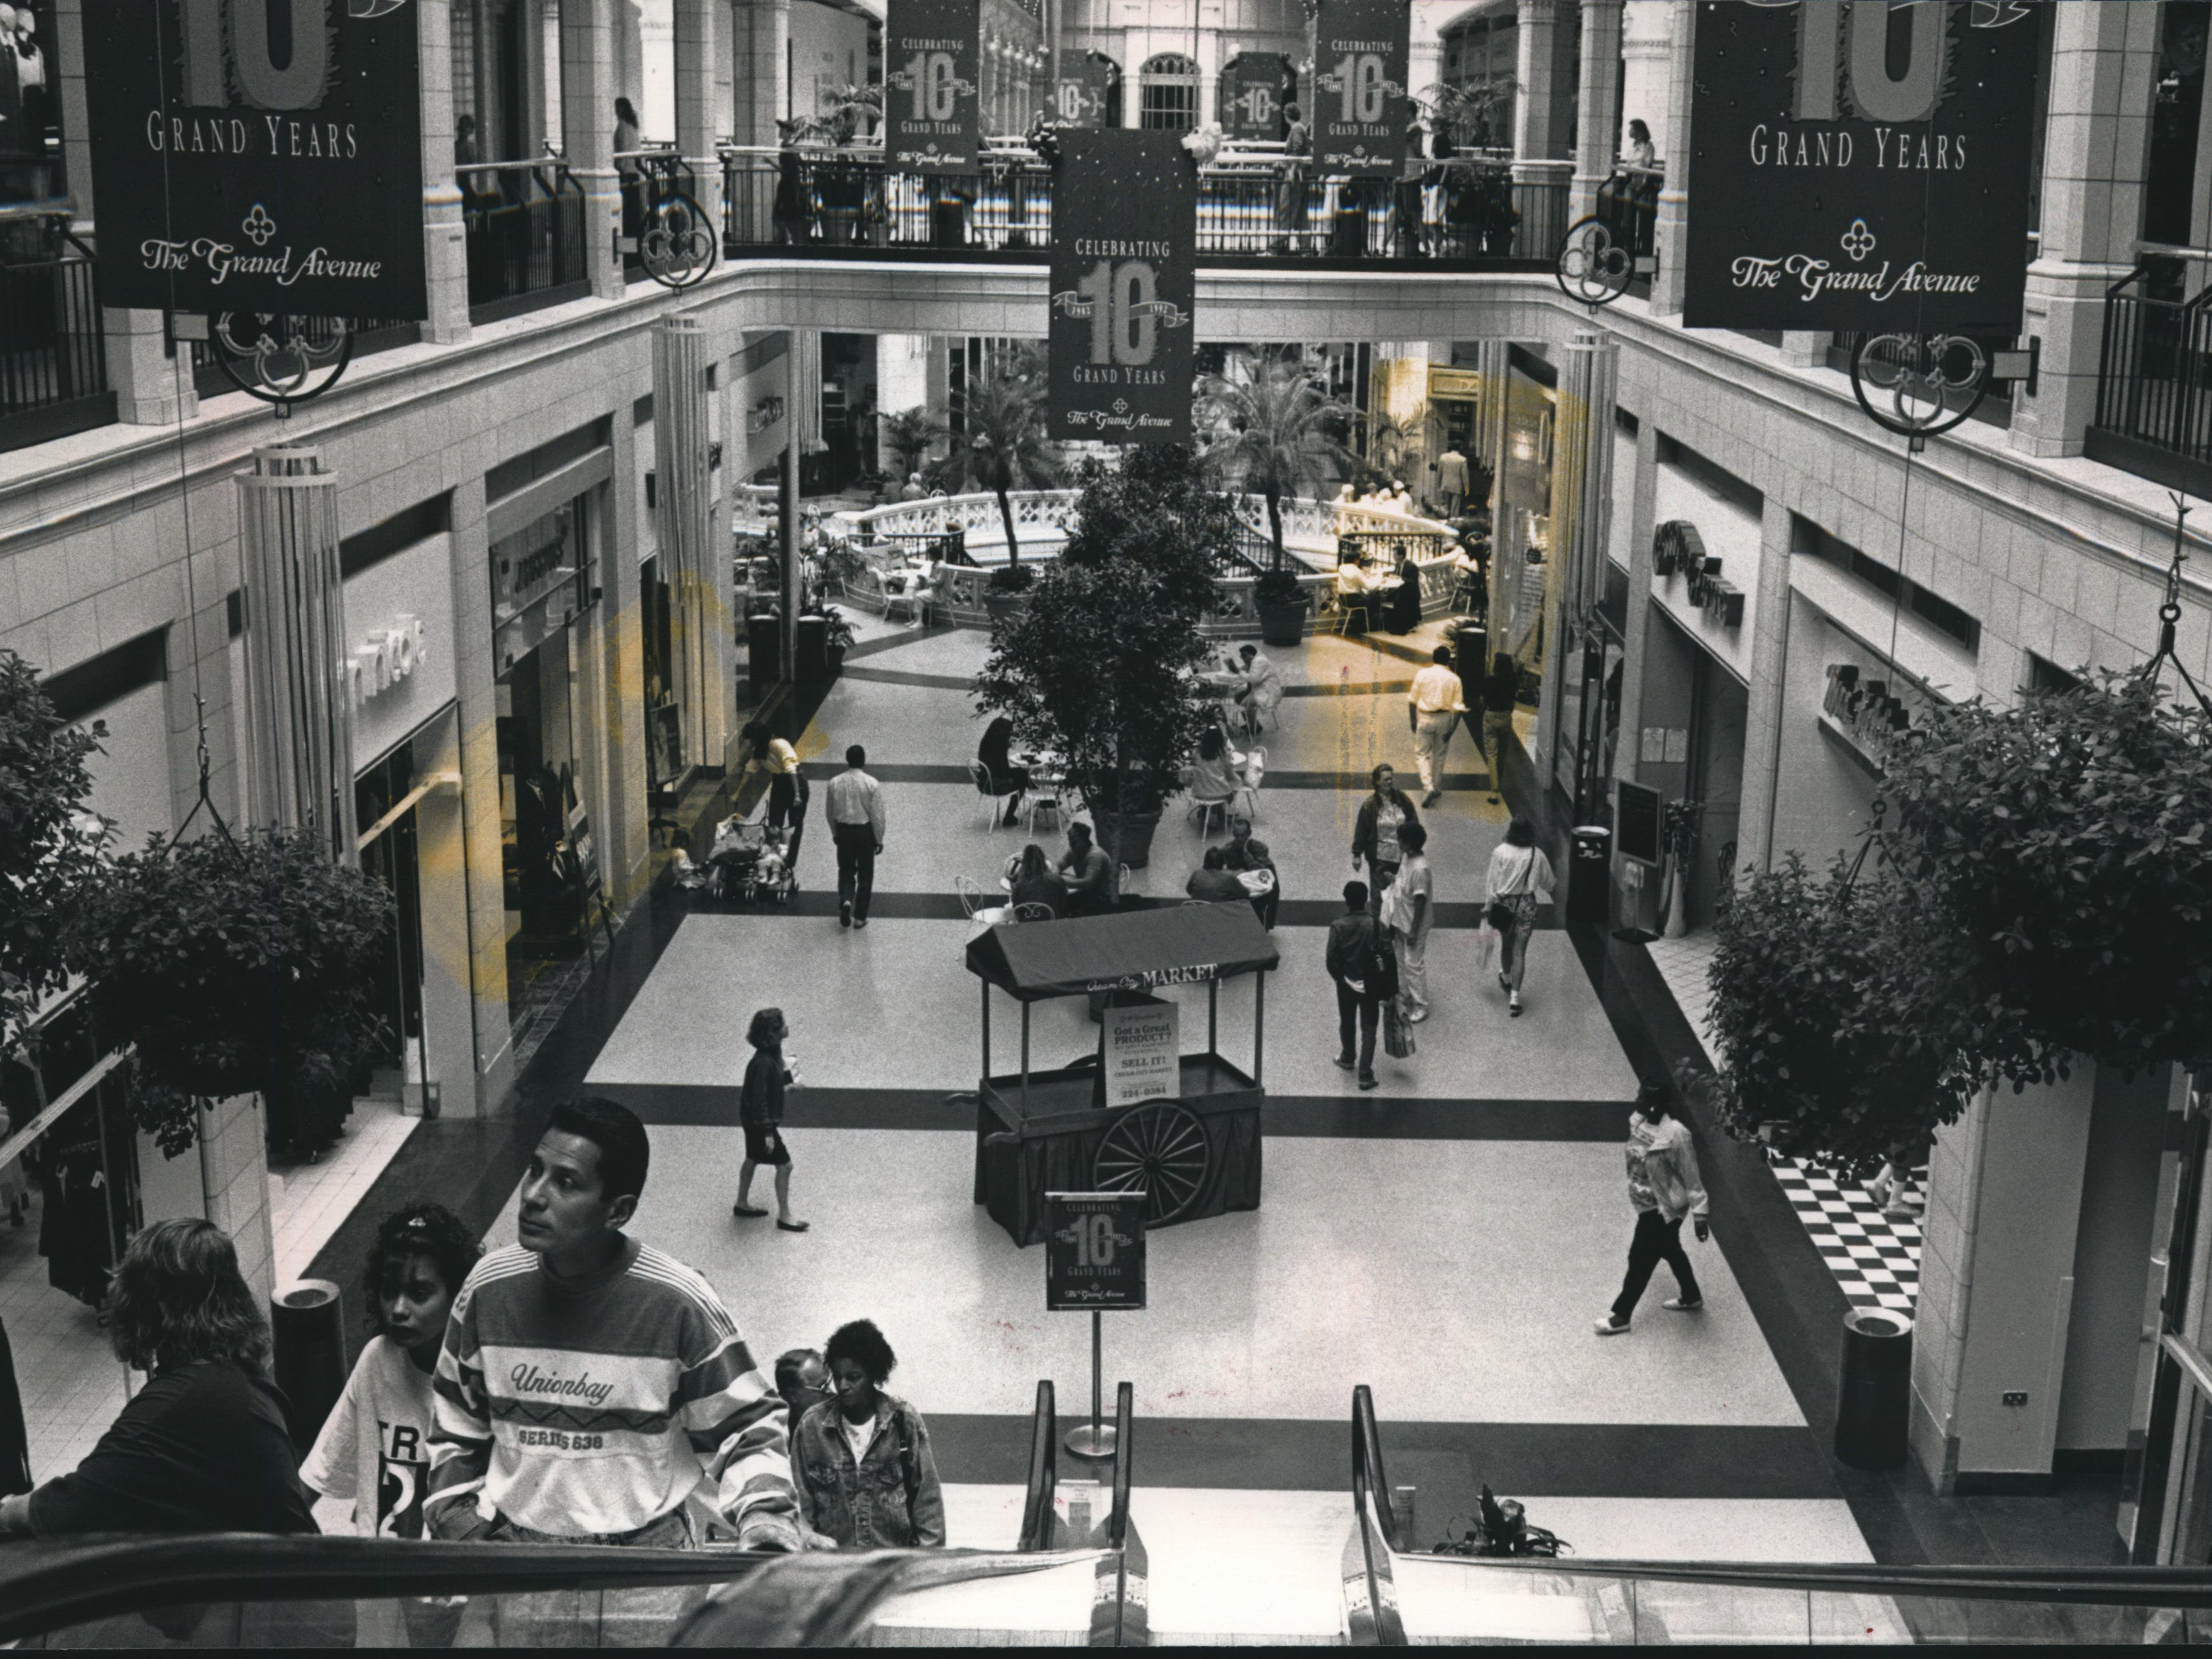 Shoppers make their rounds at the Grand Avenue Mall. Milwaukee, Wisconsin.